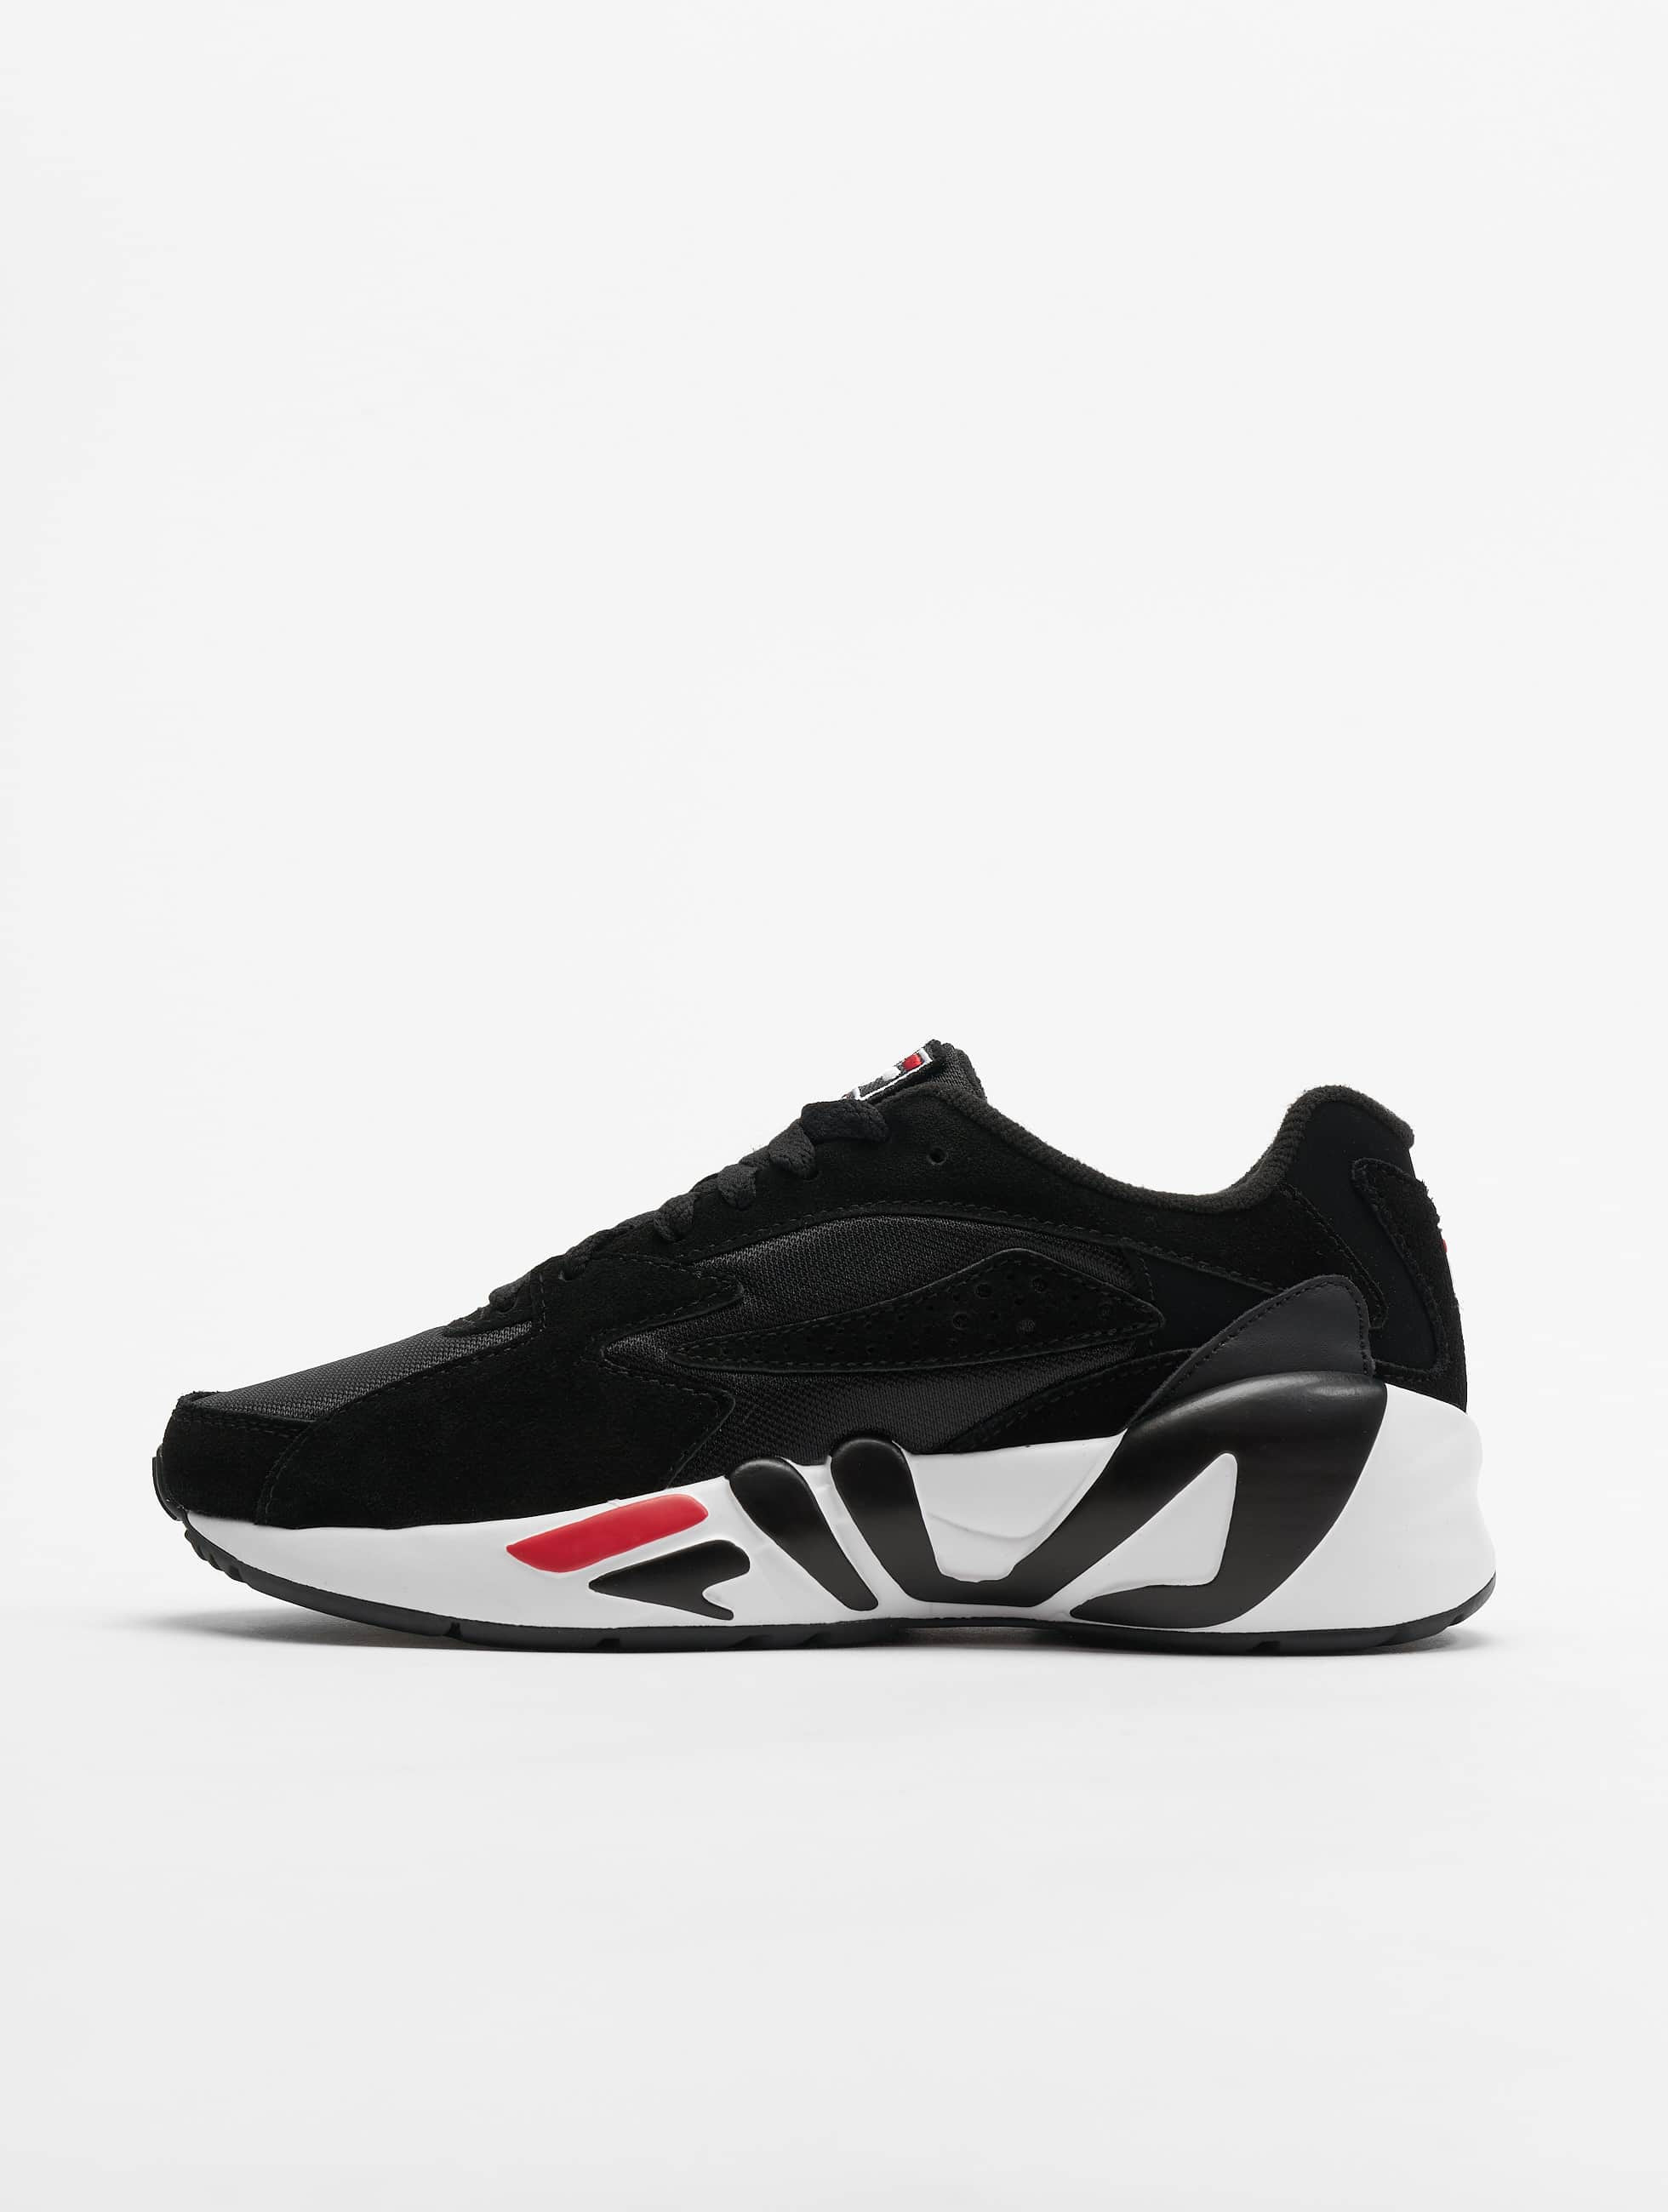 Mindblower Heritage Sneakers Fila Blackwhitefila Red 9WEDHIY2